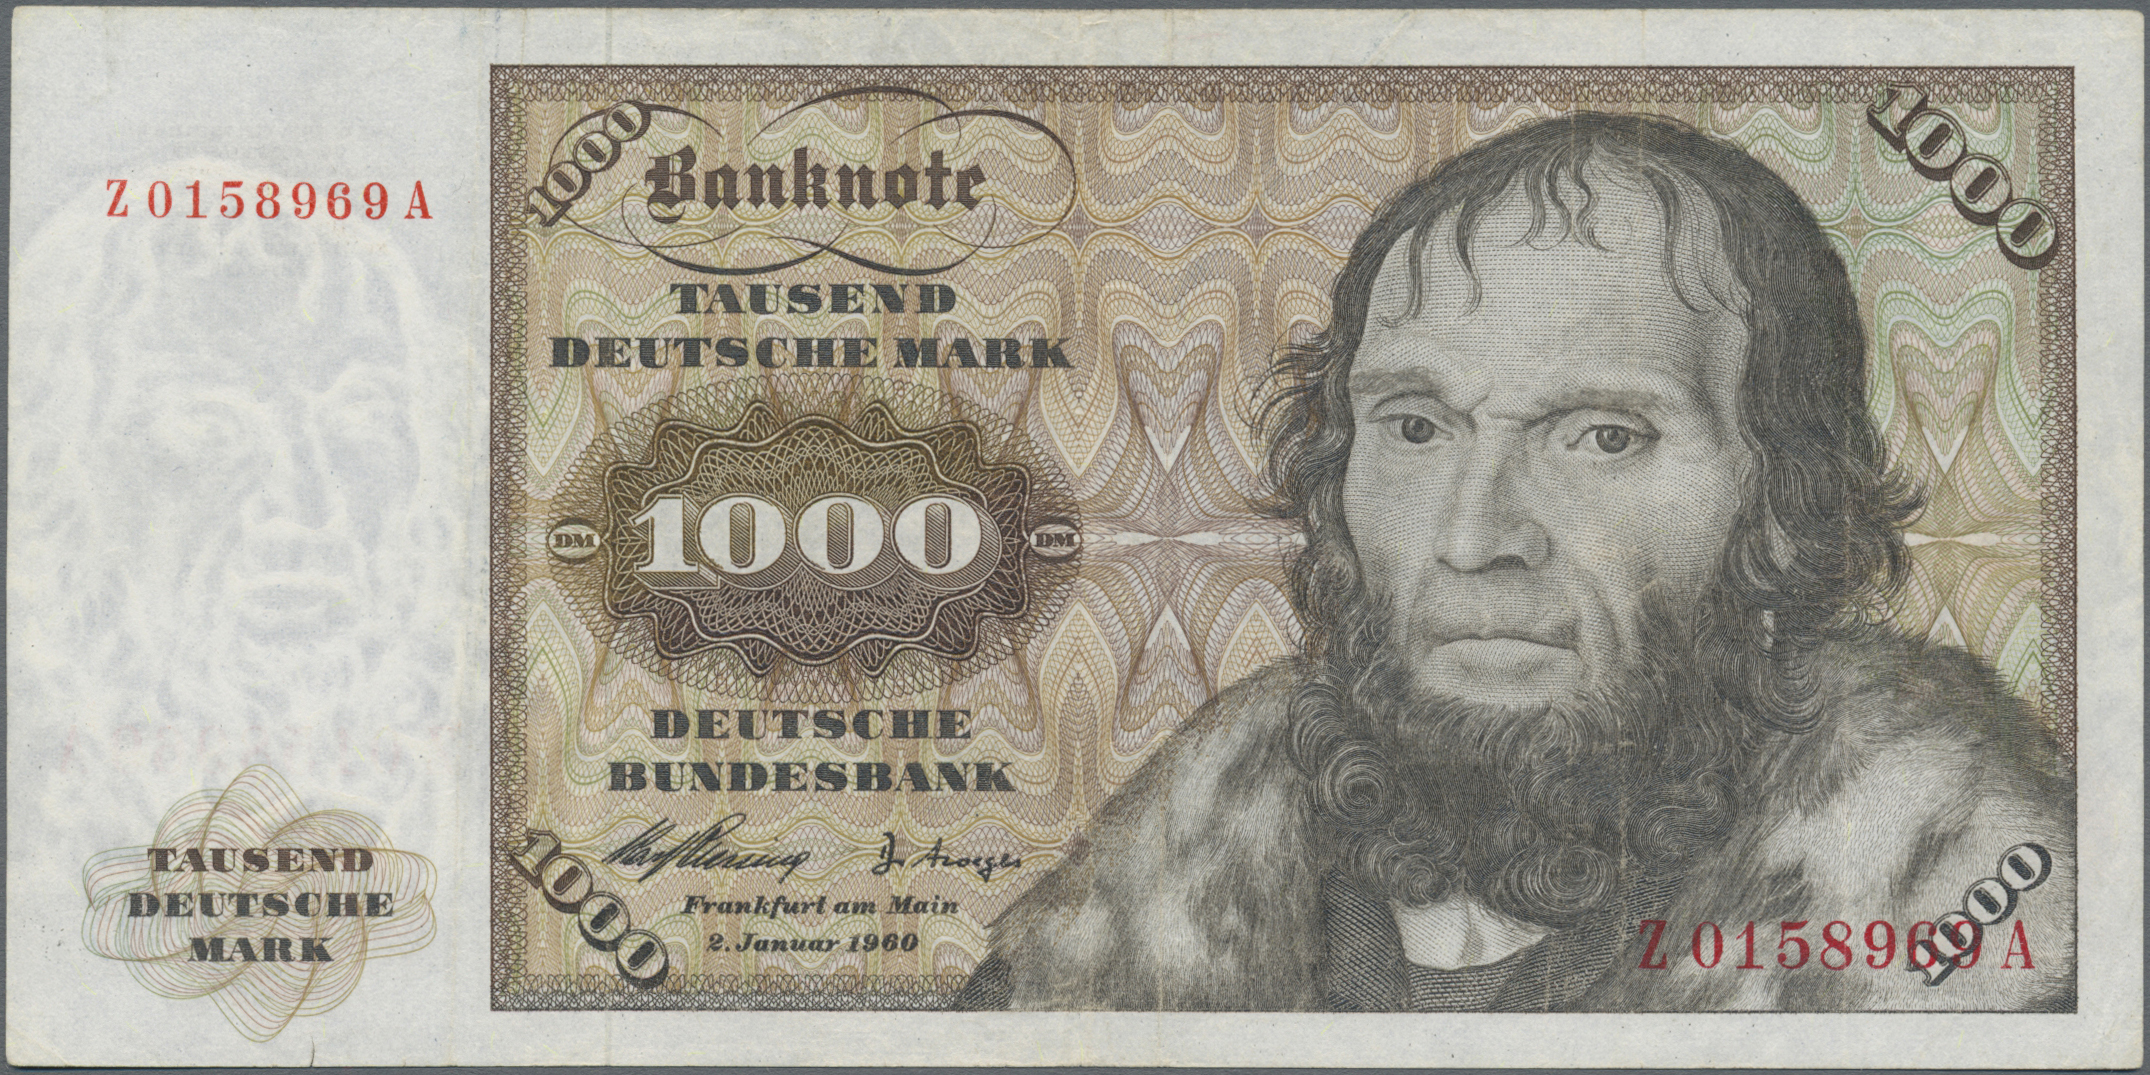 Lot 03421 - Deutschland - Bank Deutscher Länder + Bundesrepublik Deutschland | Banknoten  -  Auktionshaus Christoph Gärtner GmbH & Co. KG Sale #45 Banknotes Germany/Numismatics